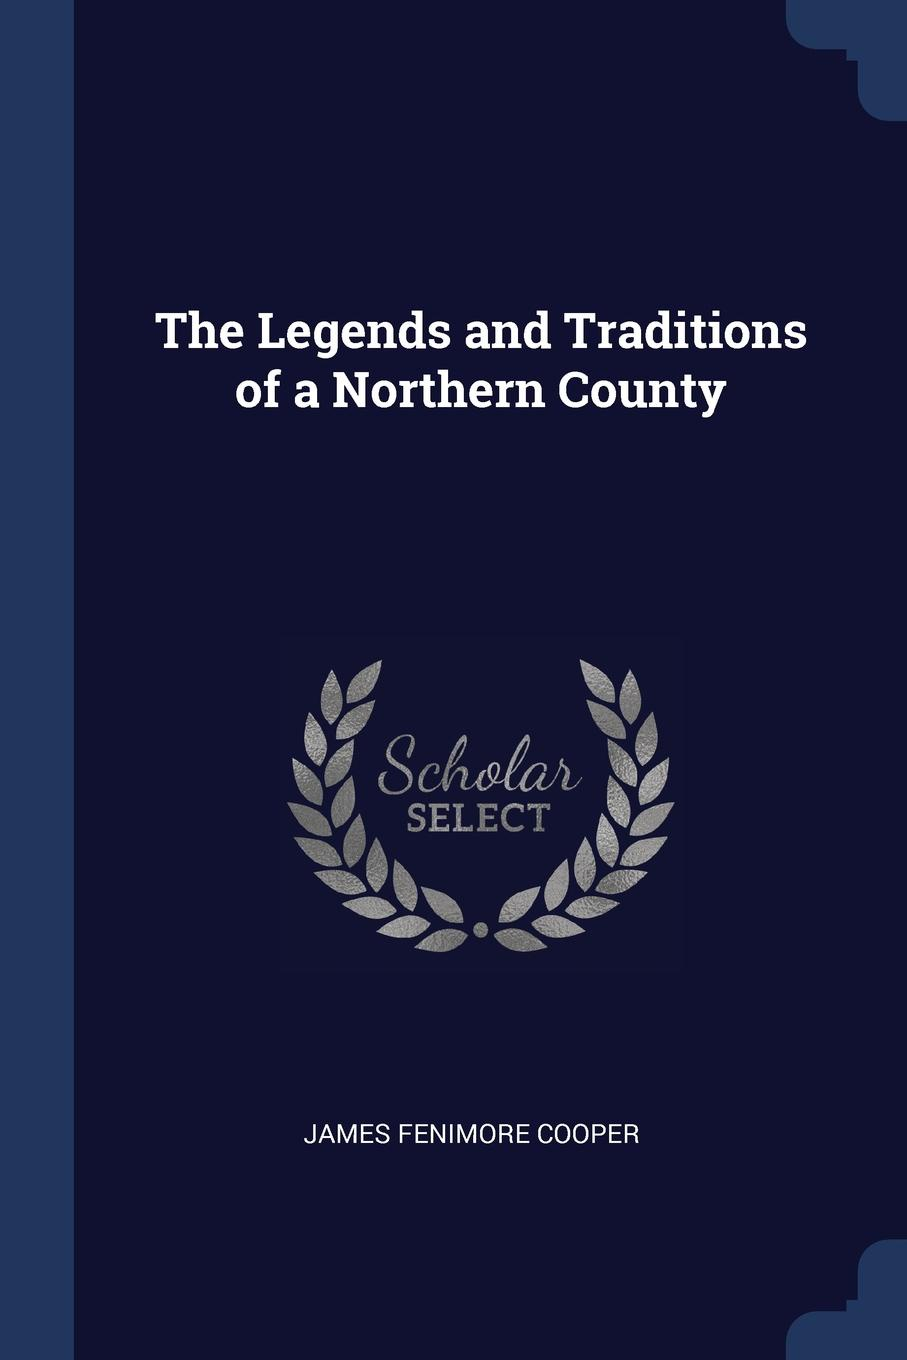 The Legends and Traditions of a Northern County